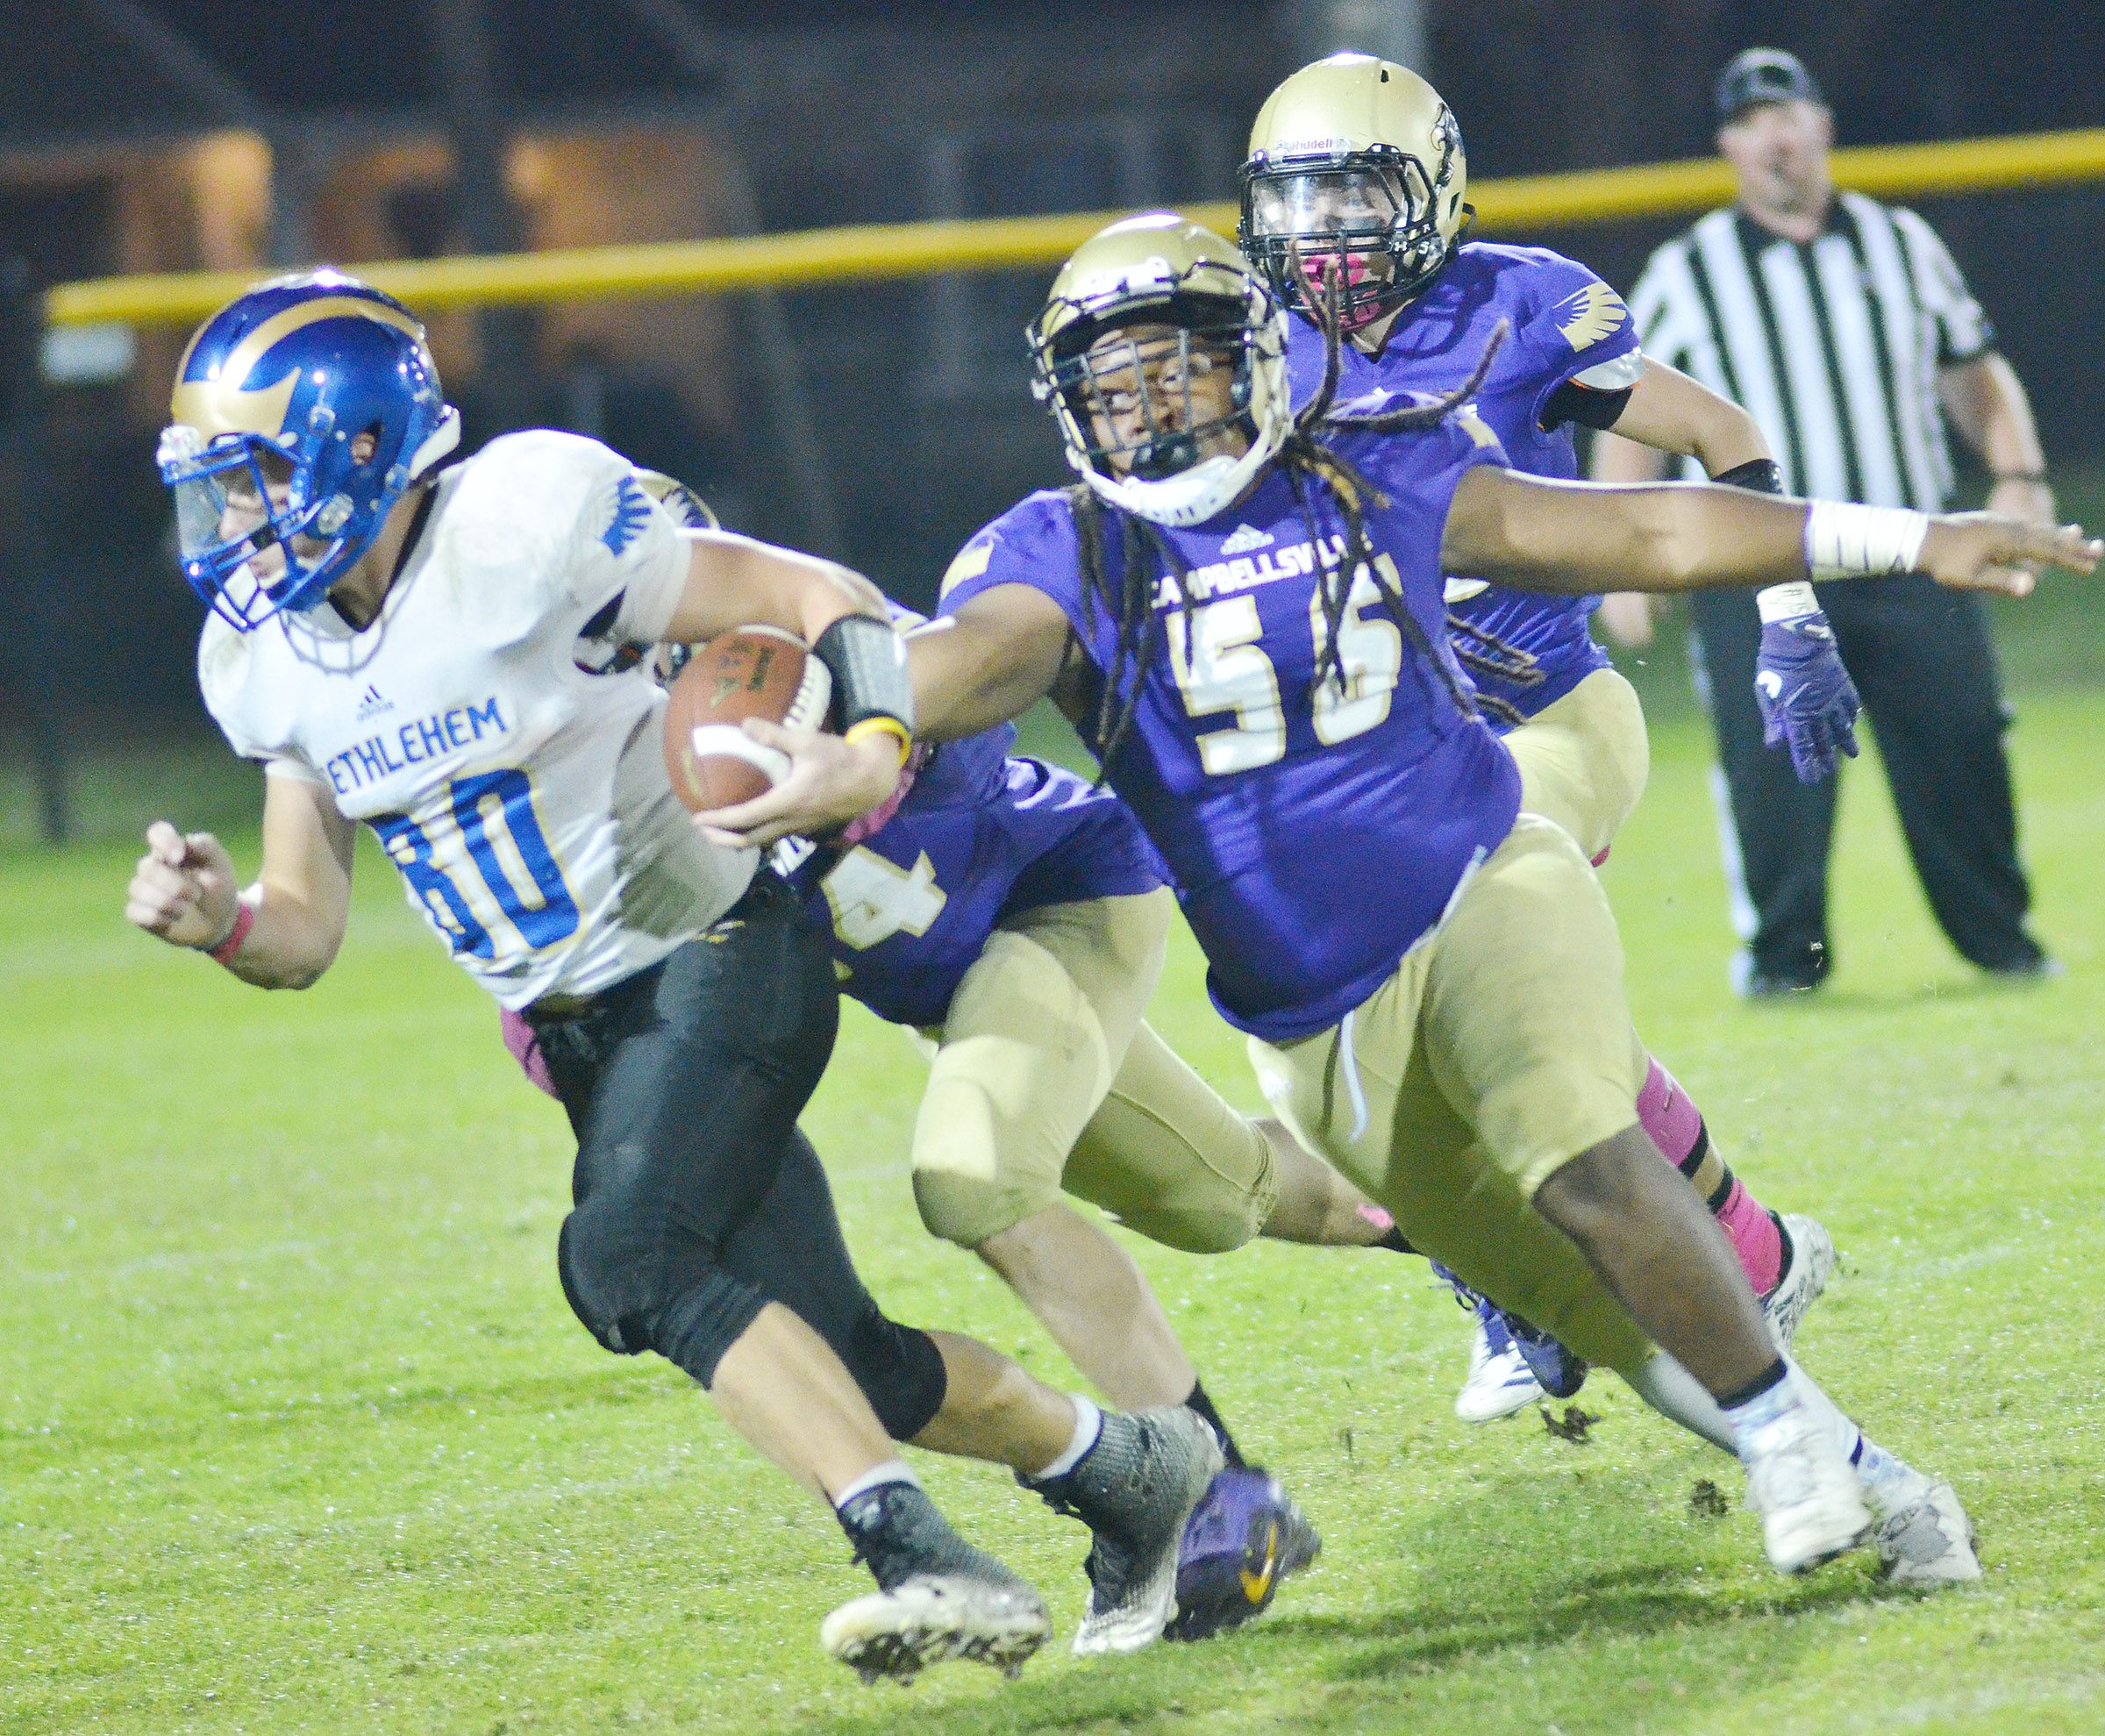 CHS sophomore Taekwon McCoy runs after a Bethlehem player.